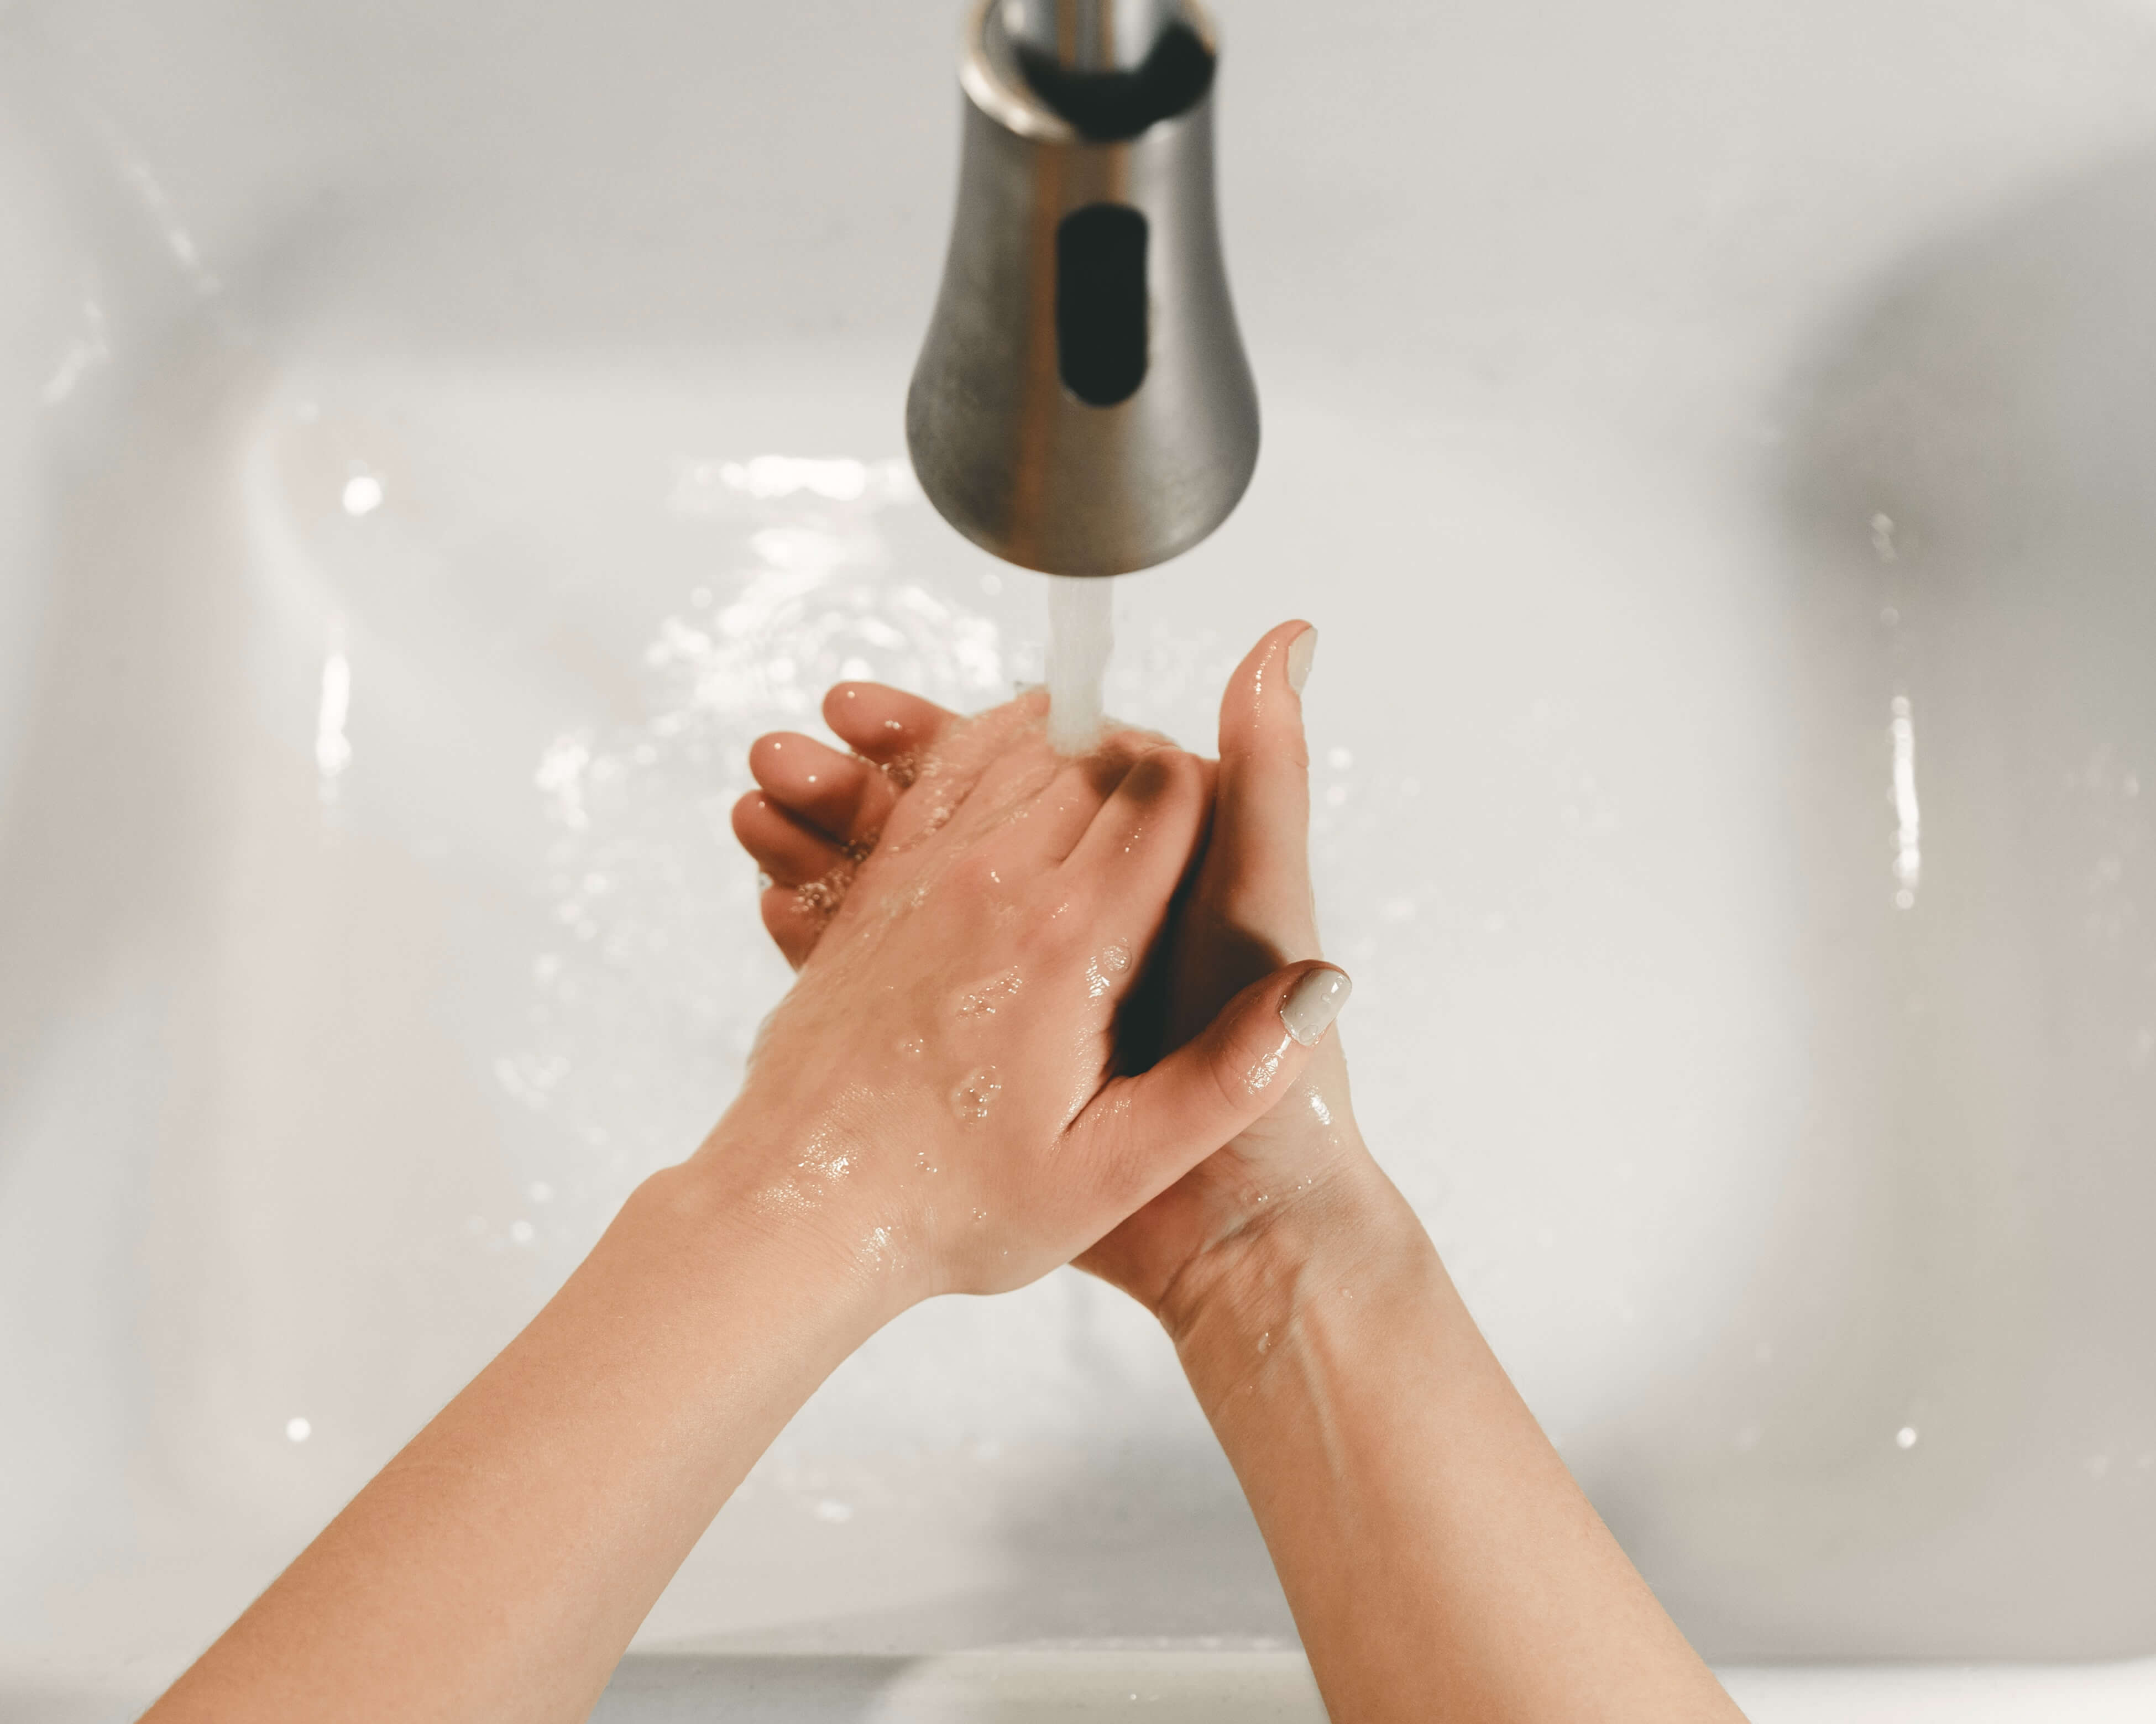 Image of hands being washed under a faucet